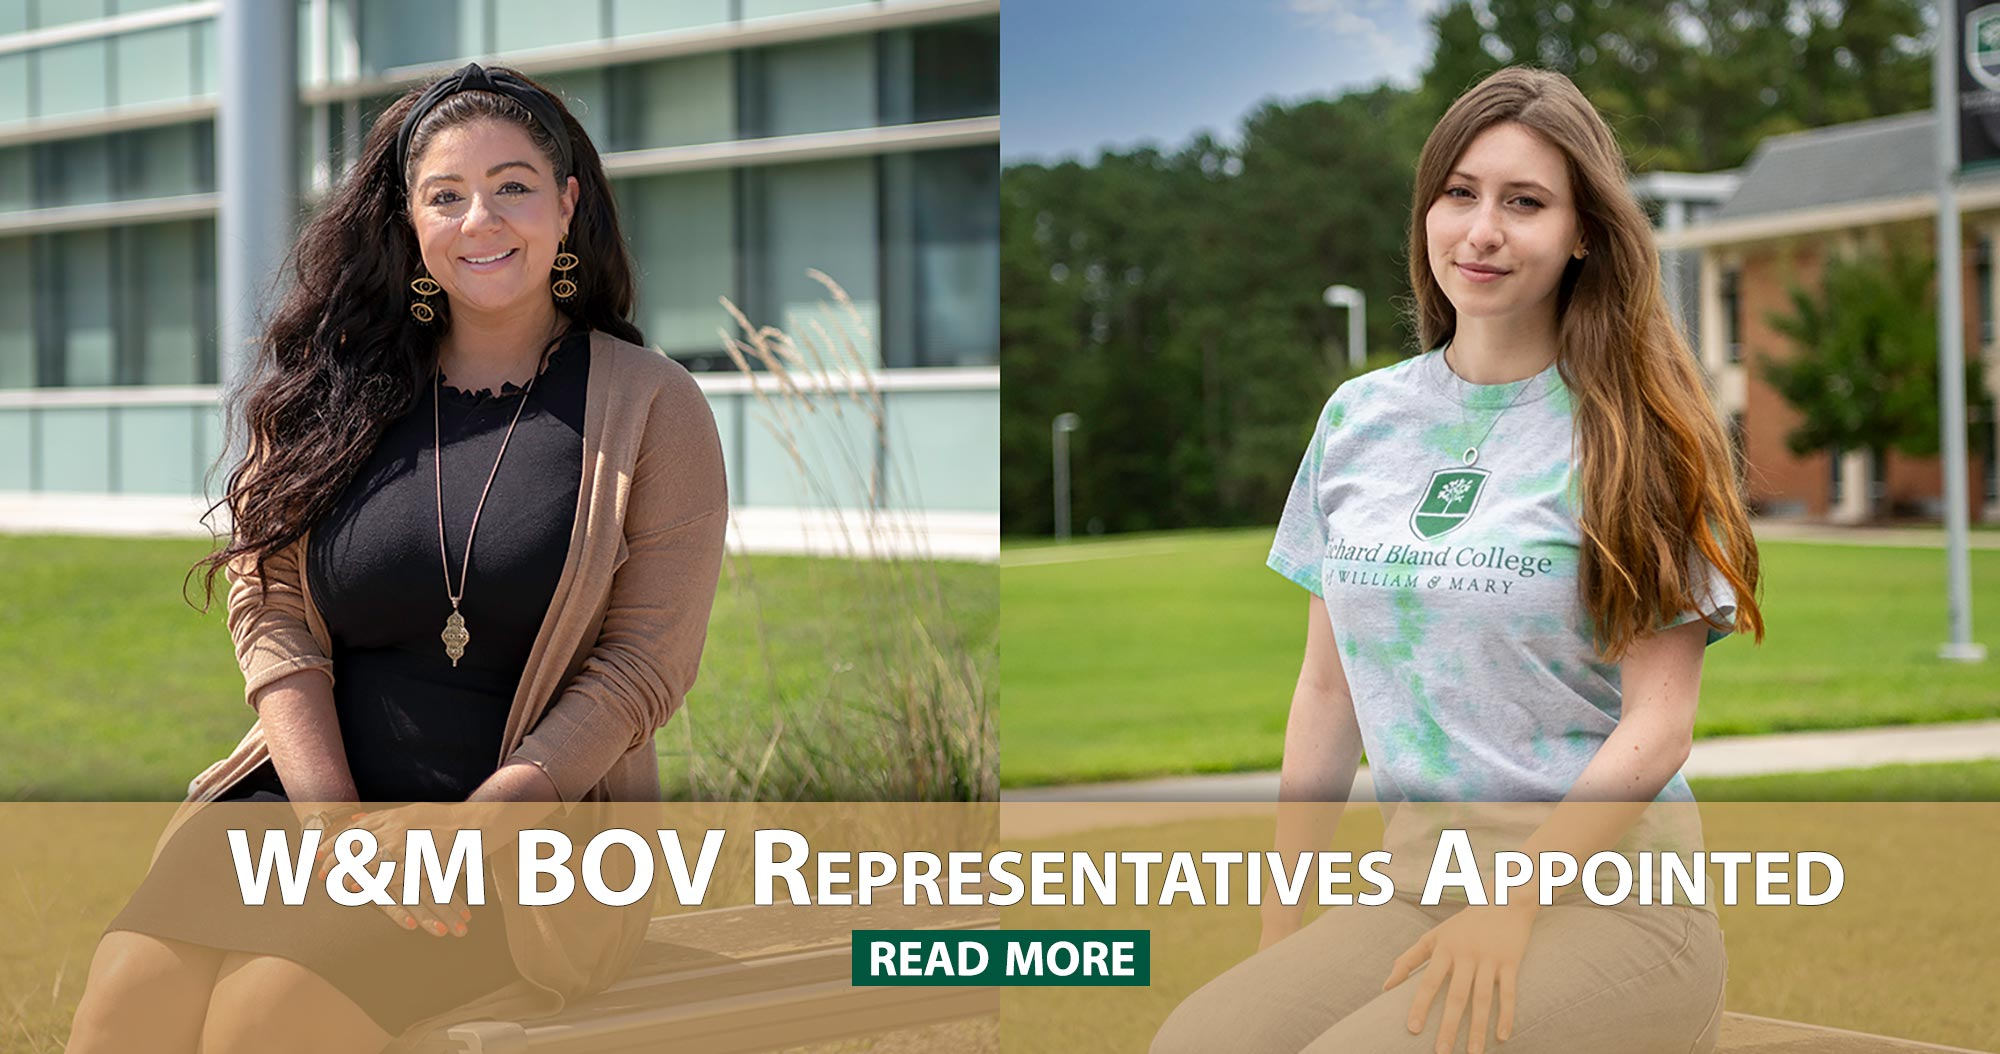 RBC Representatives Selected to the William & Mary Board of Visitors